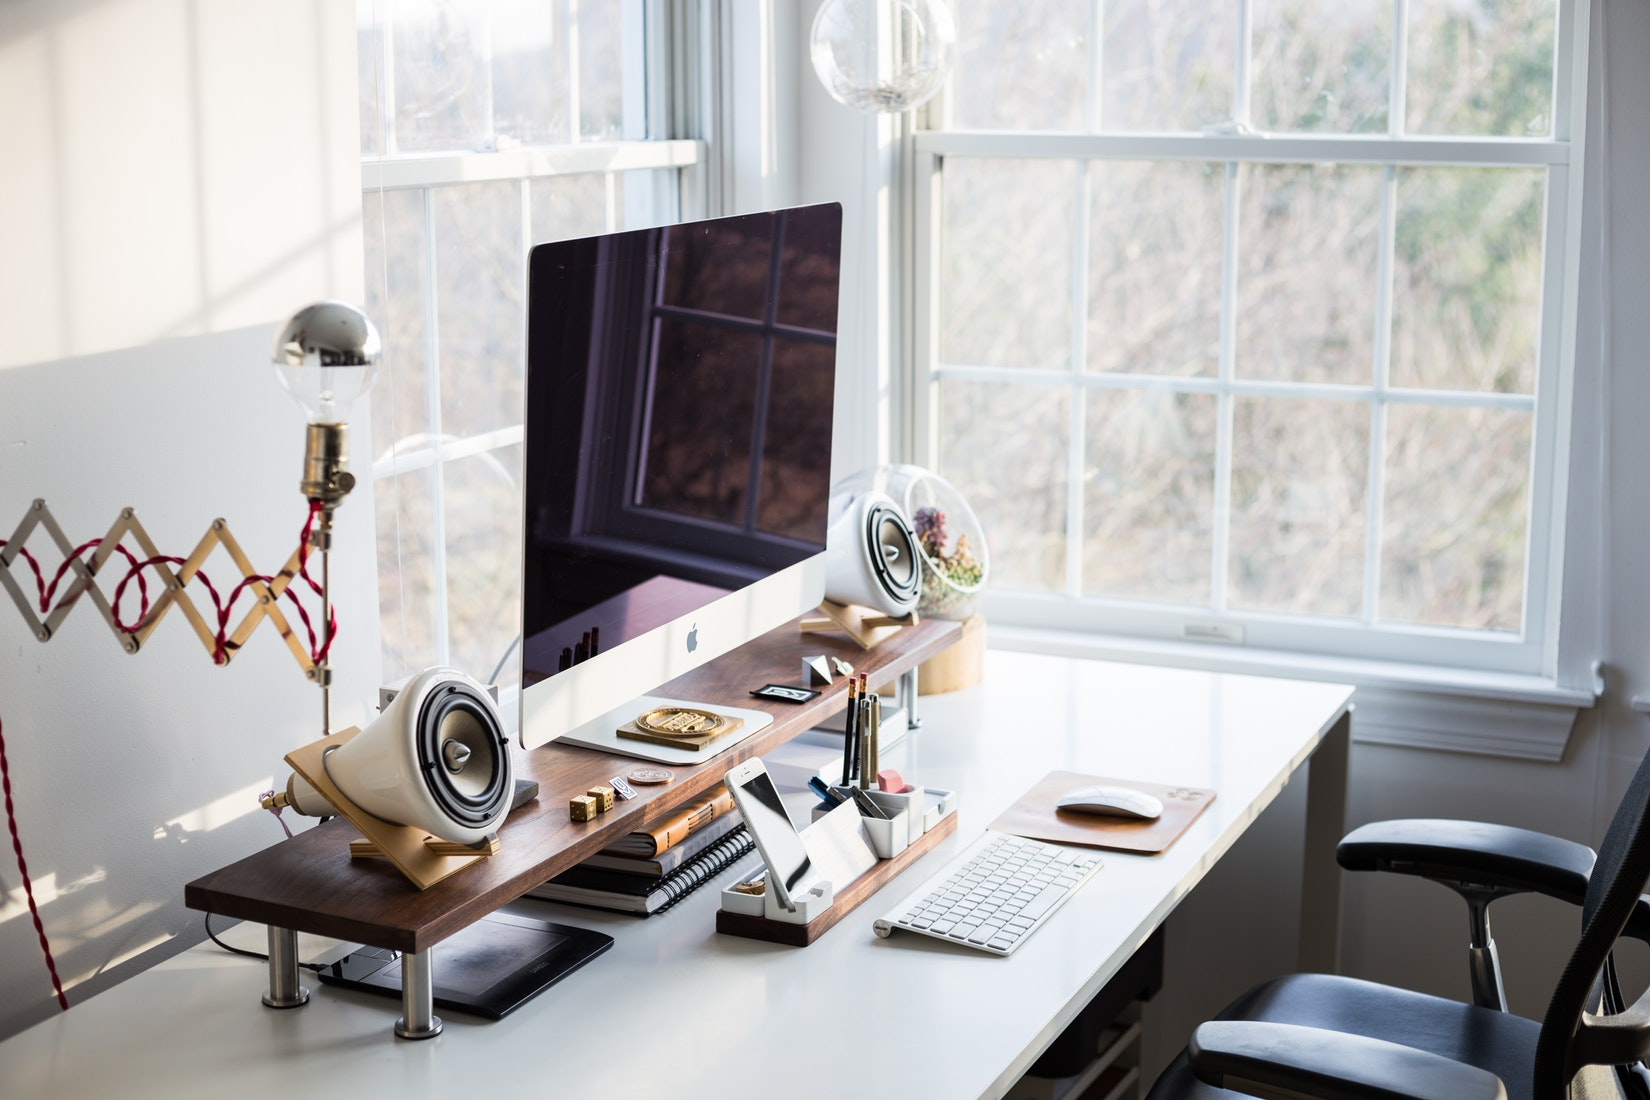 How to create your own Instagram-worthy home office & How to create your own Instagram-worthy home office - FLAVOURMAG